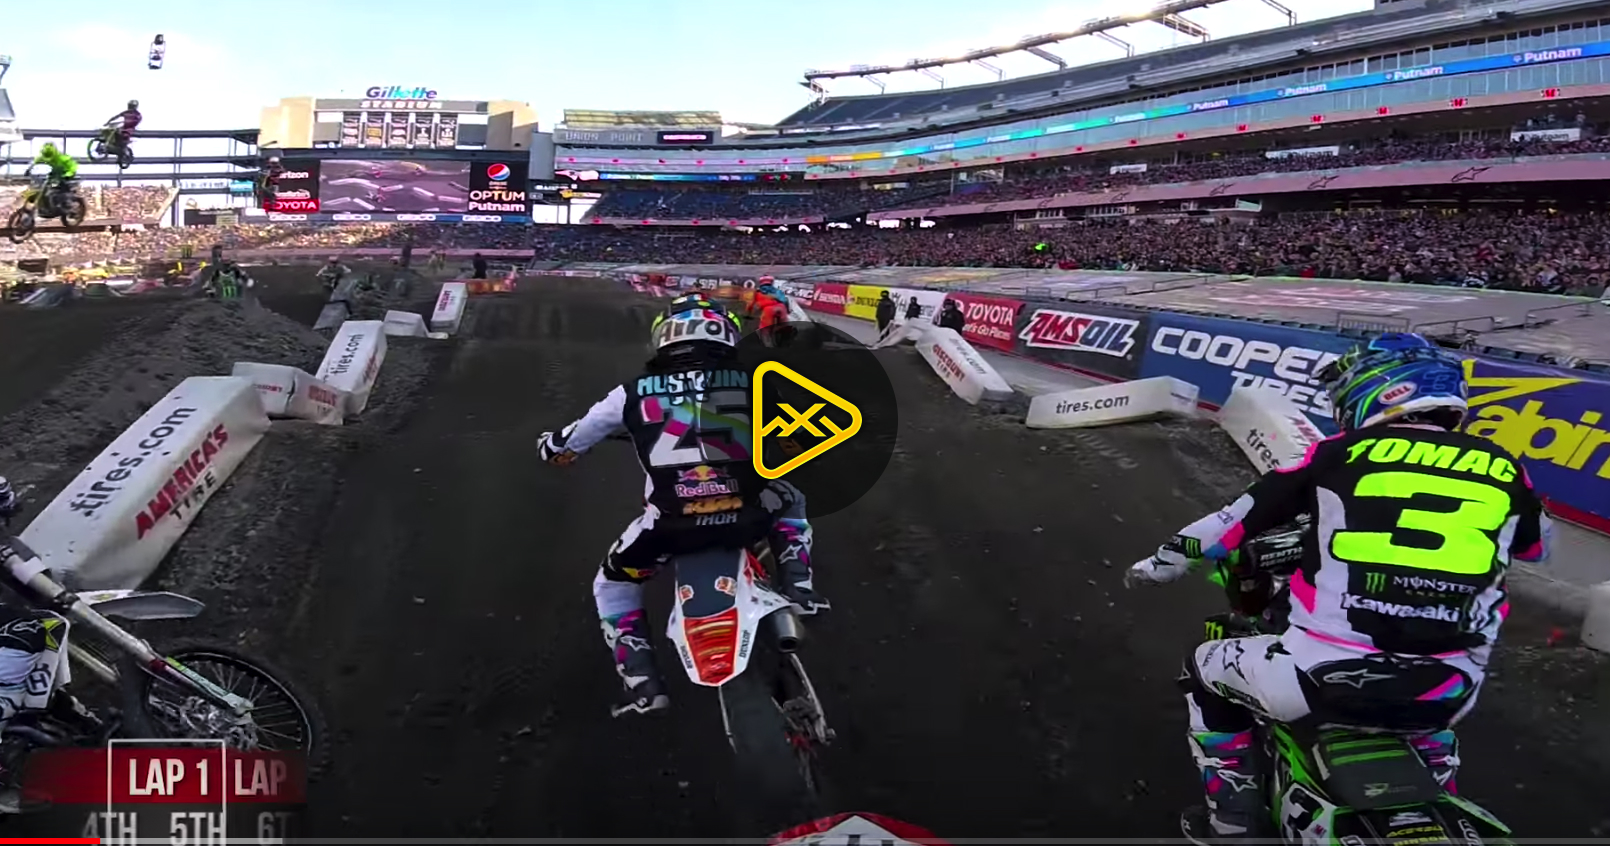 GoPro: Vince Friese Main Event Foxborough SX